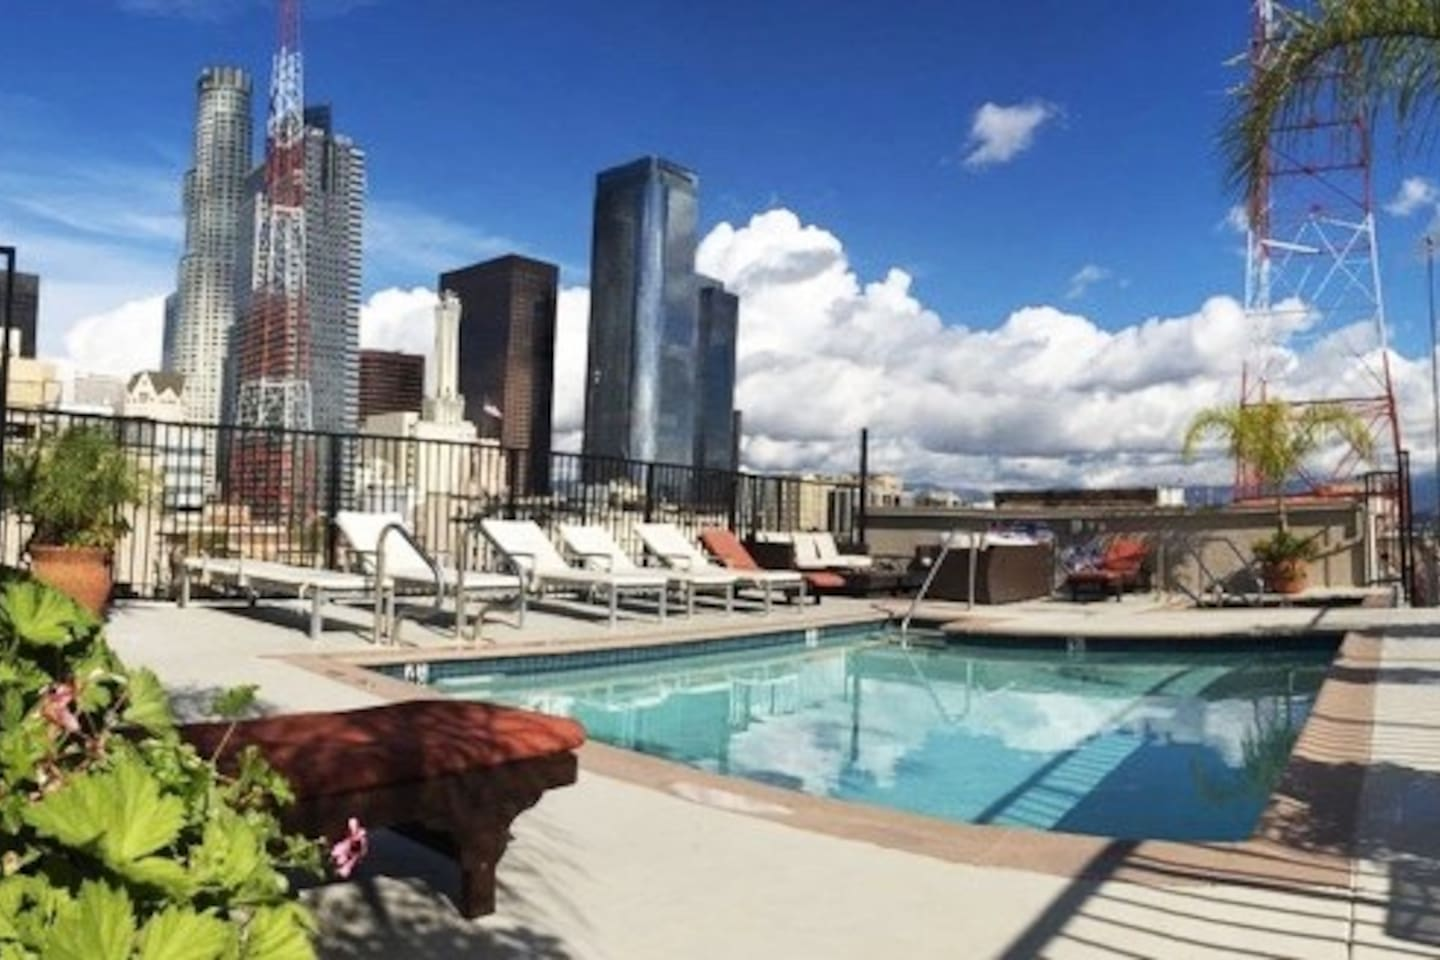 Rooftop pool and jacuzzi with skyline view